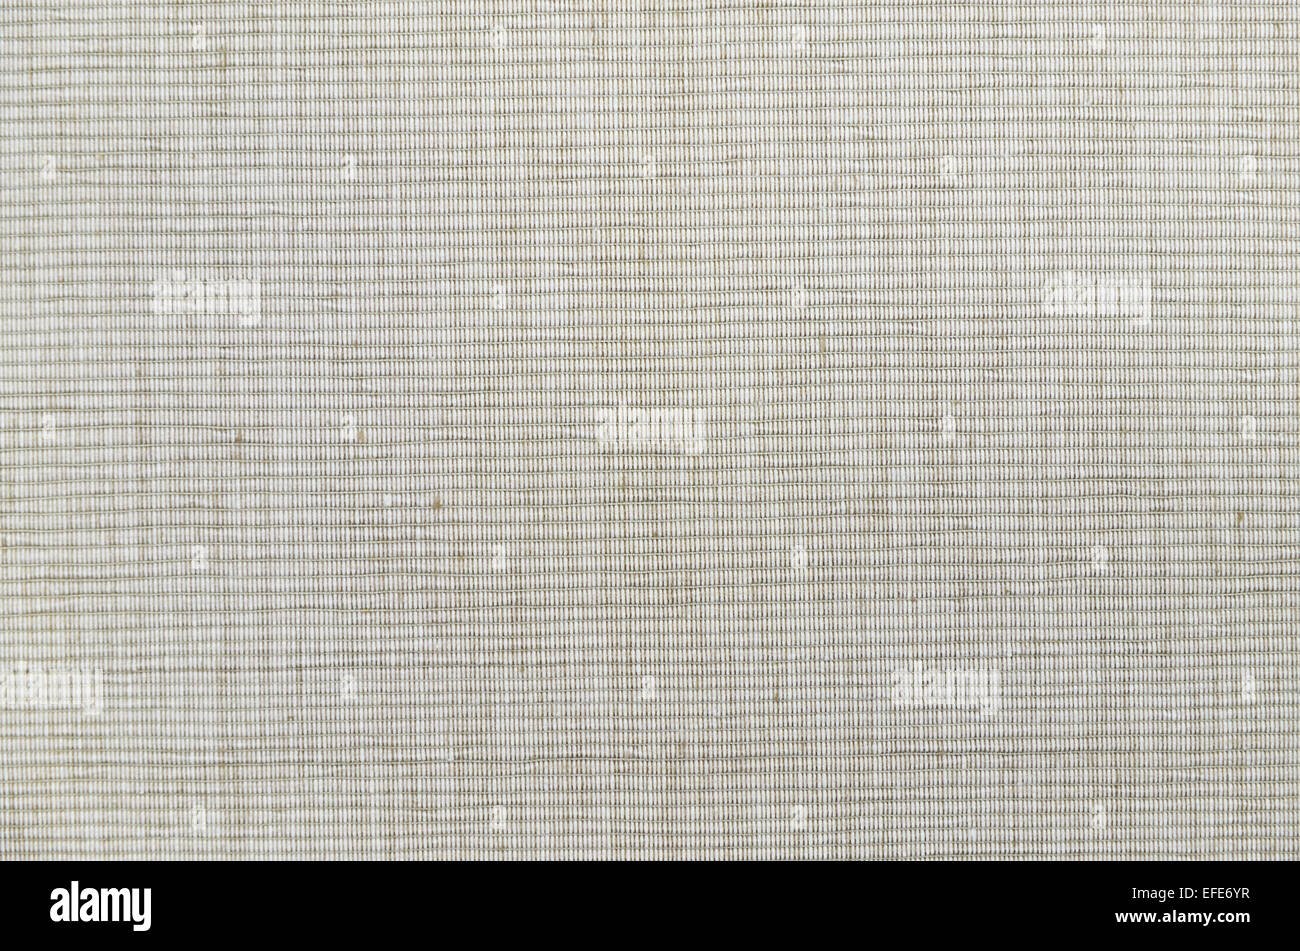 close up of a beige and white  flecked and striped place setting, detail, full frame, - Stock Image